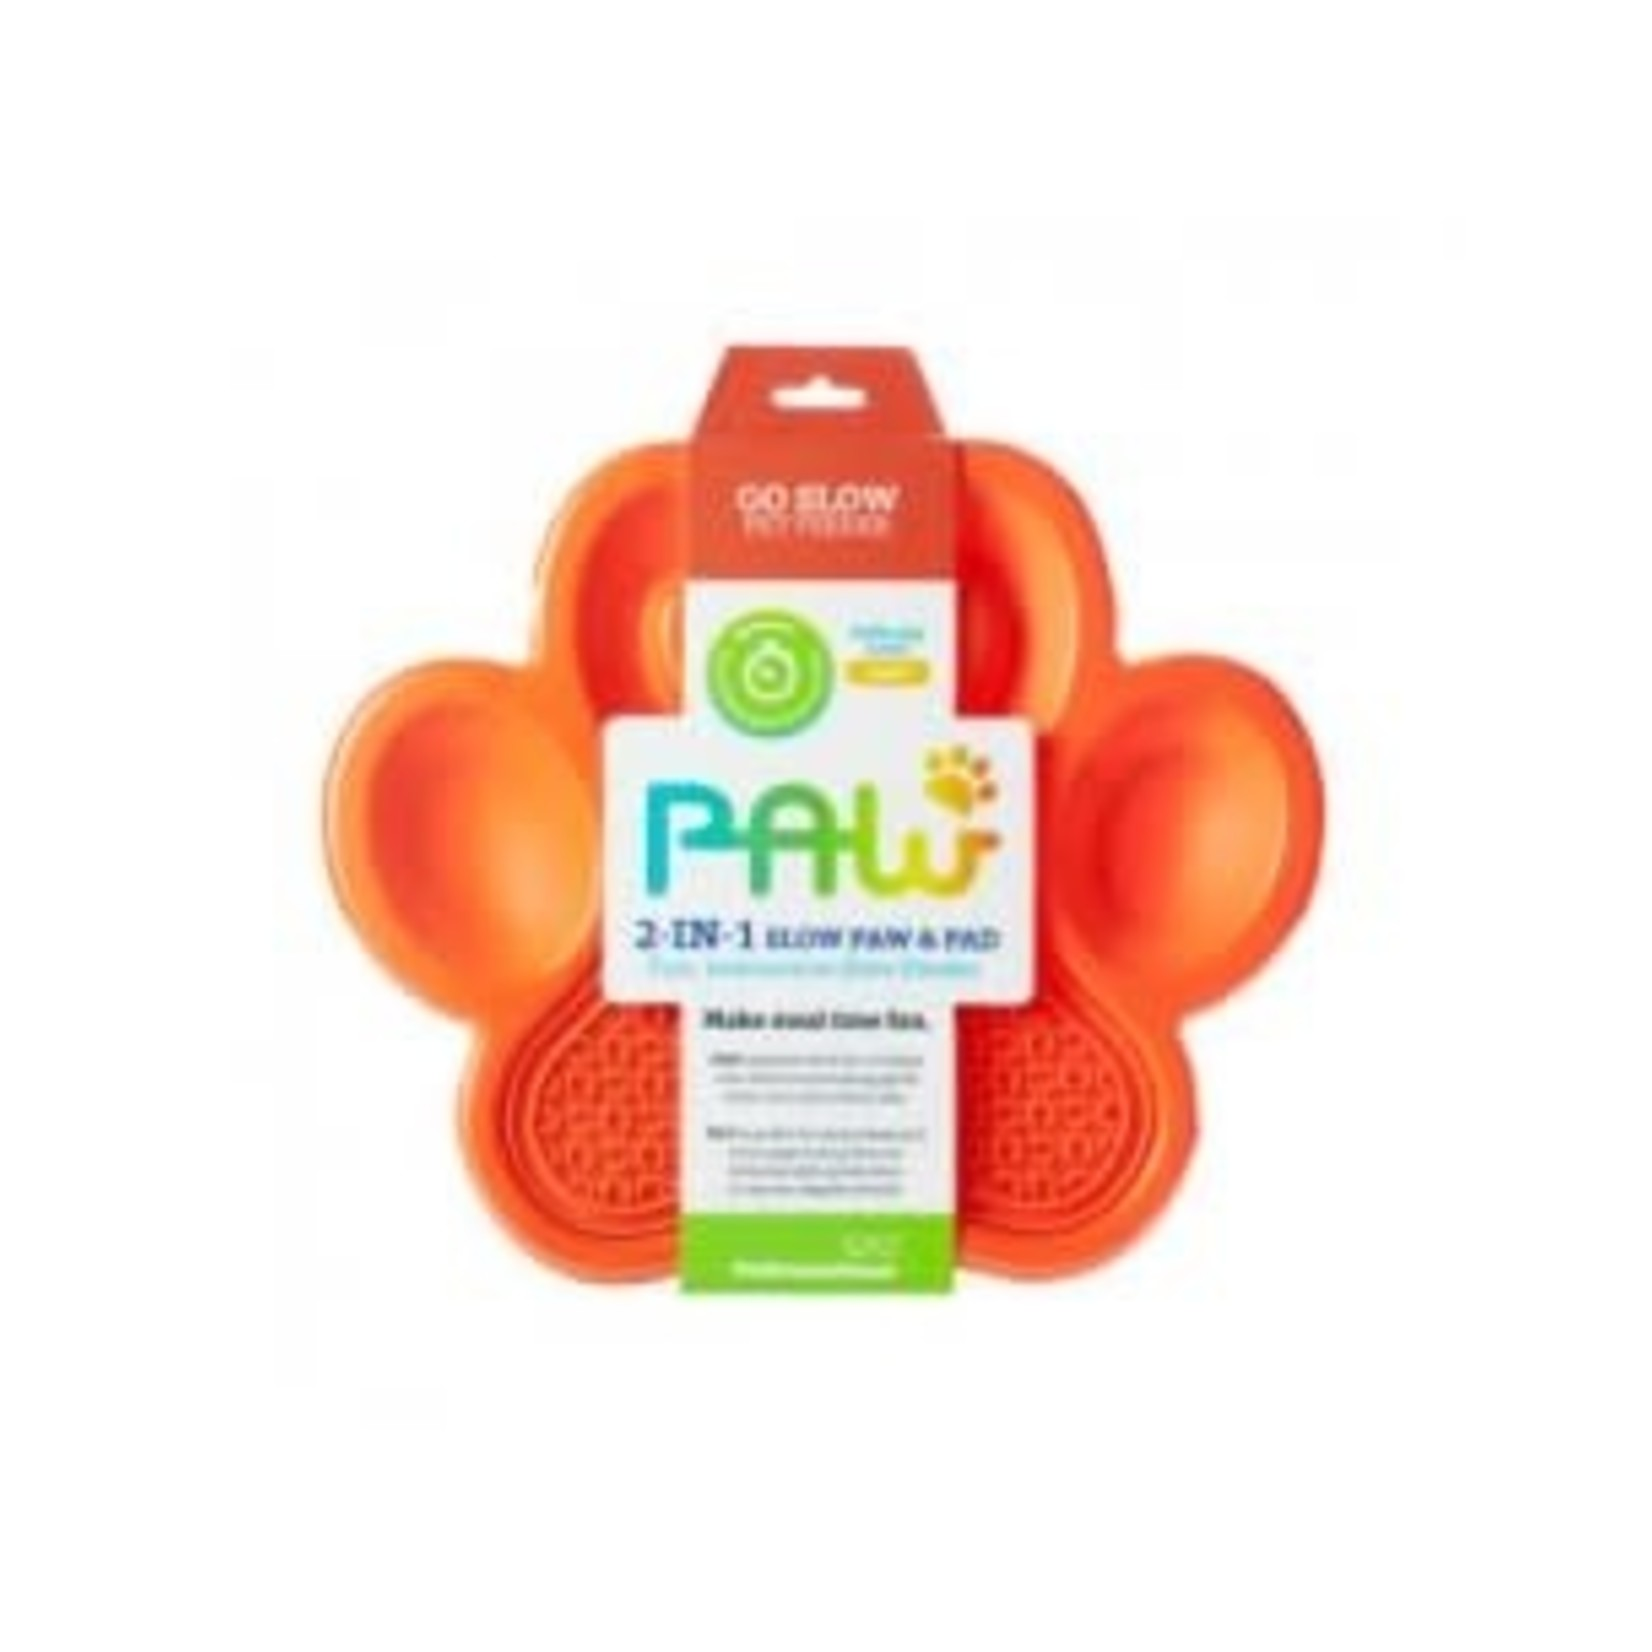 PAW Pet Dream House Paw 2-in-1 Slow Feeder & Lick Pad